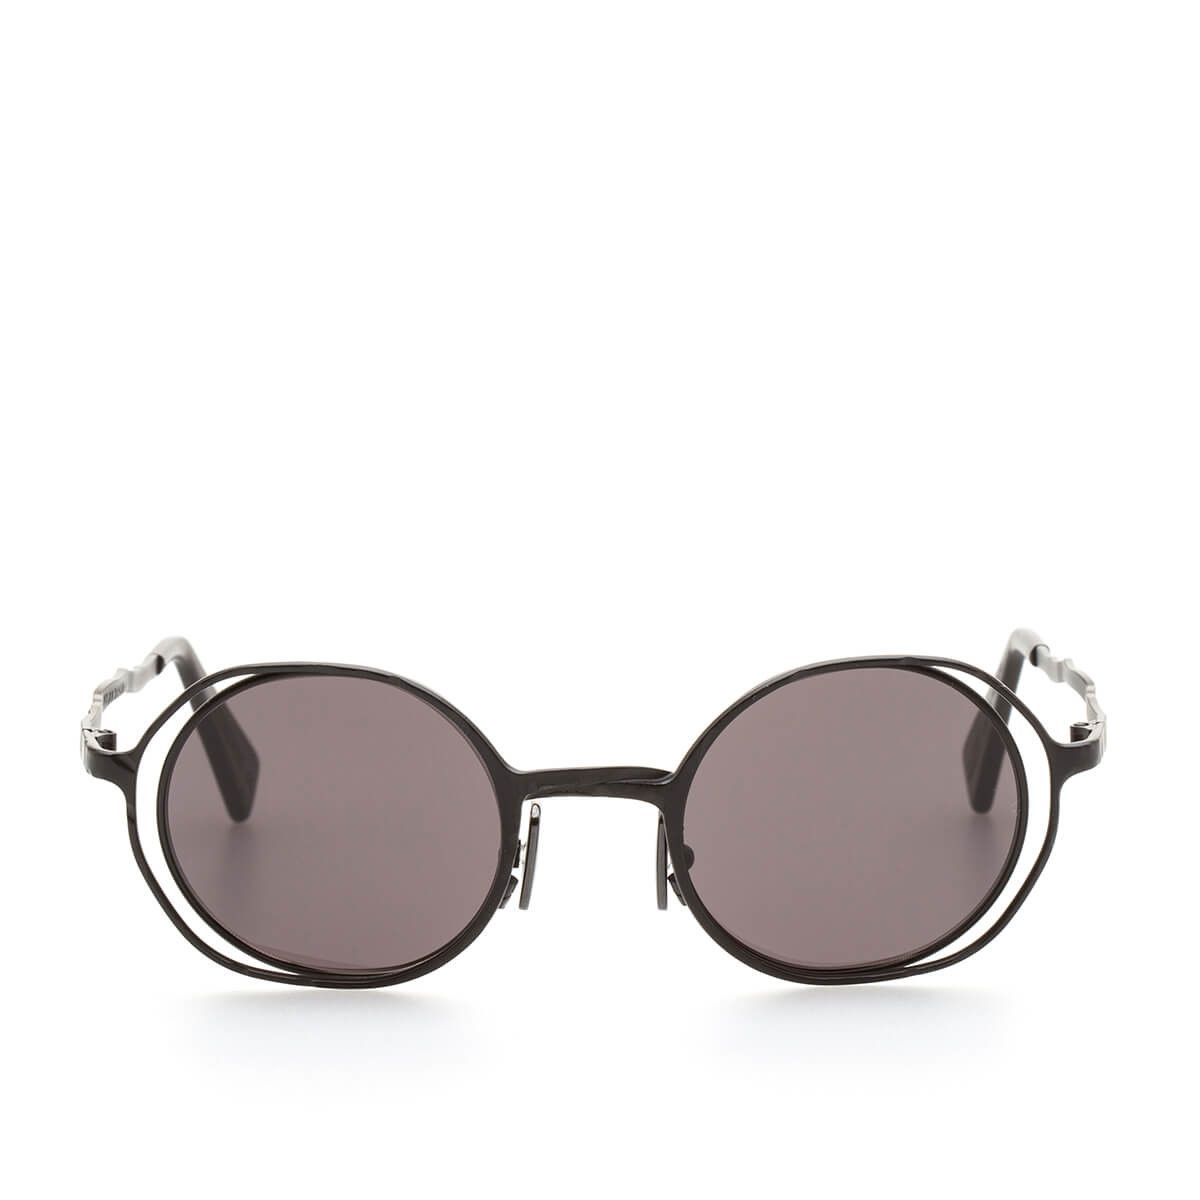 H11 sunglasses - Black Kuboraum